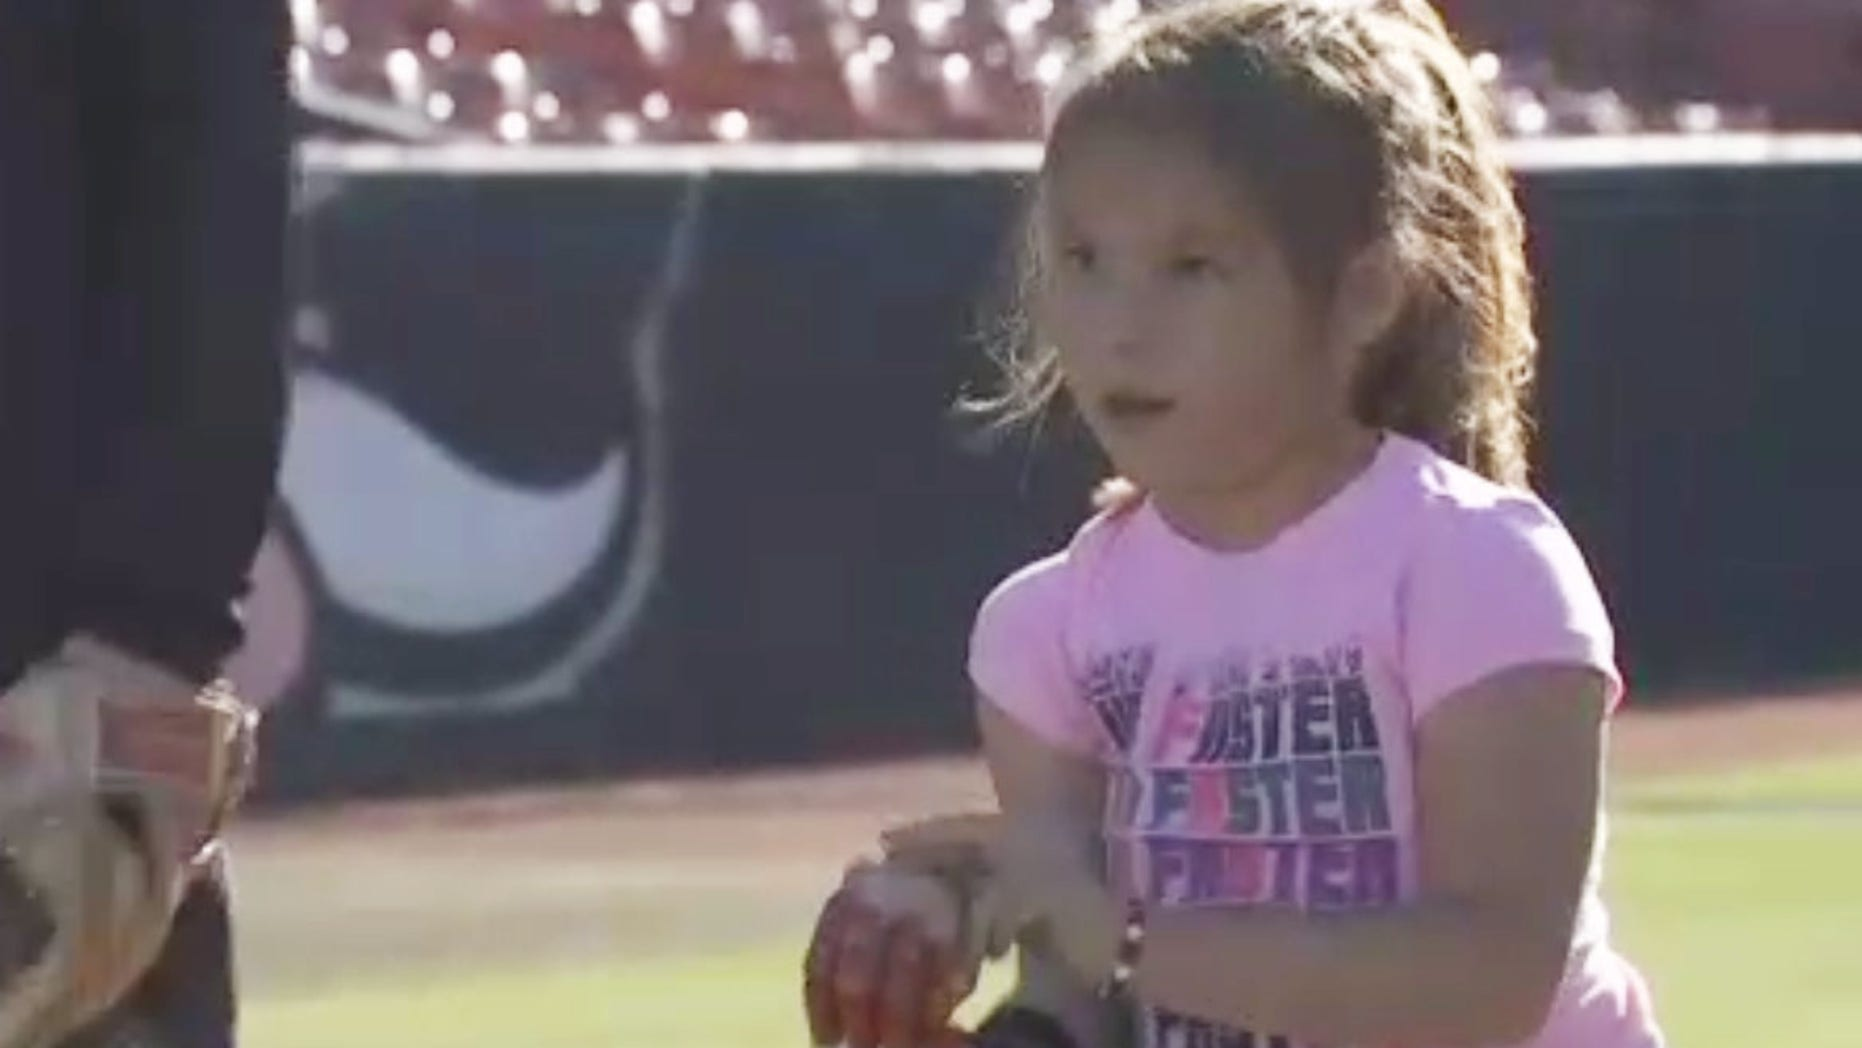 Hailey Dawson, 7, was invited to throw out the first pitch at Game 4 of the World Series.